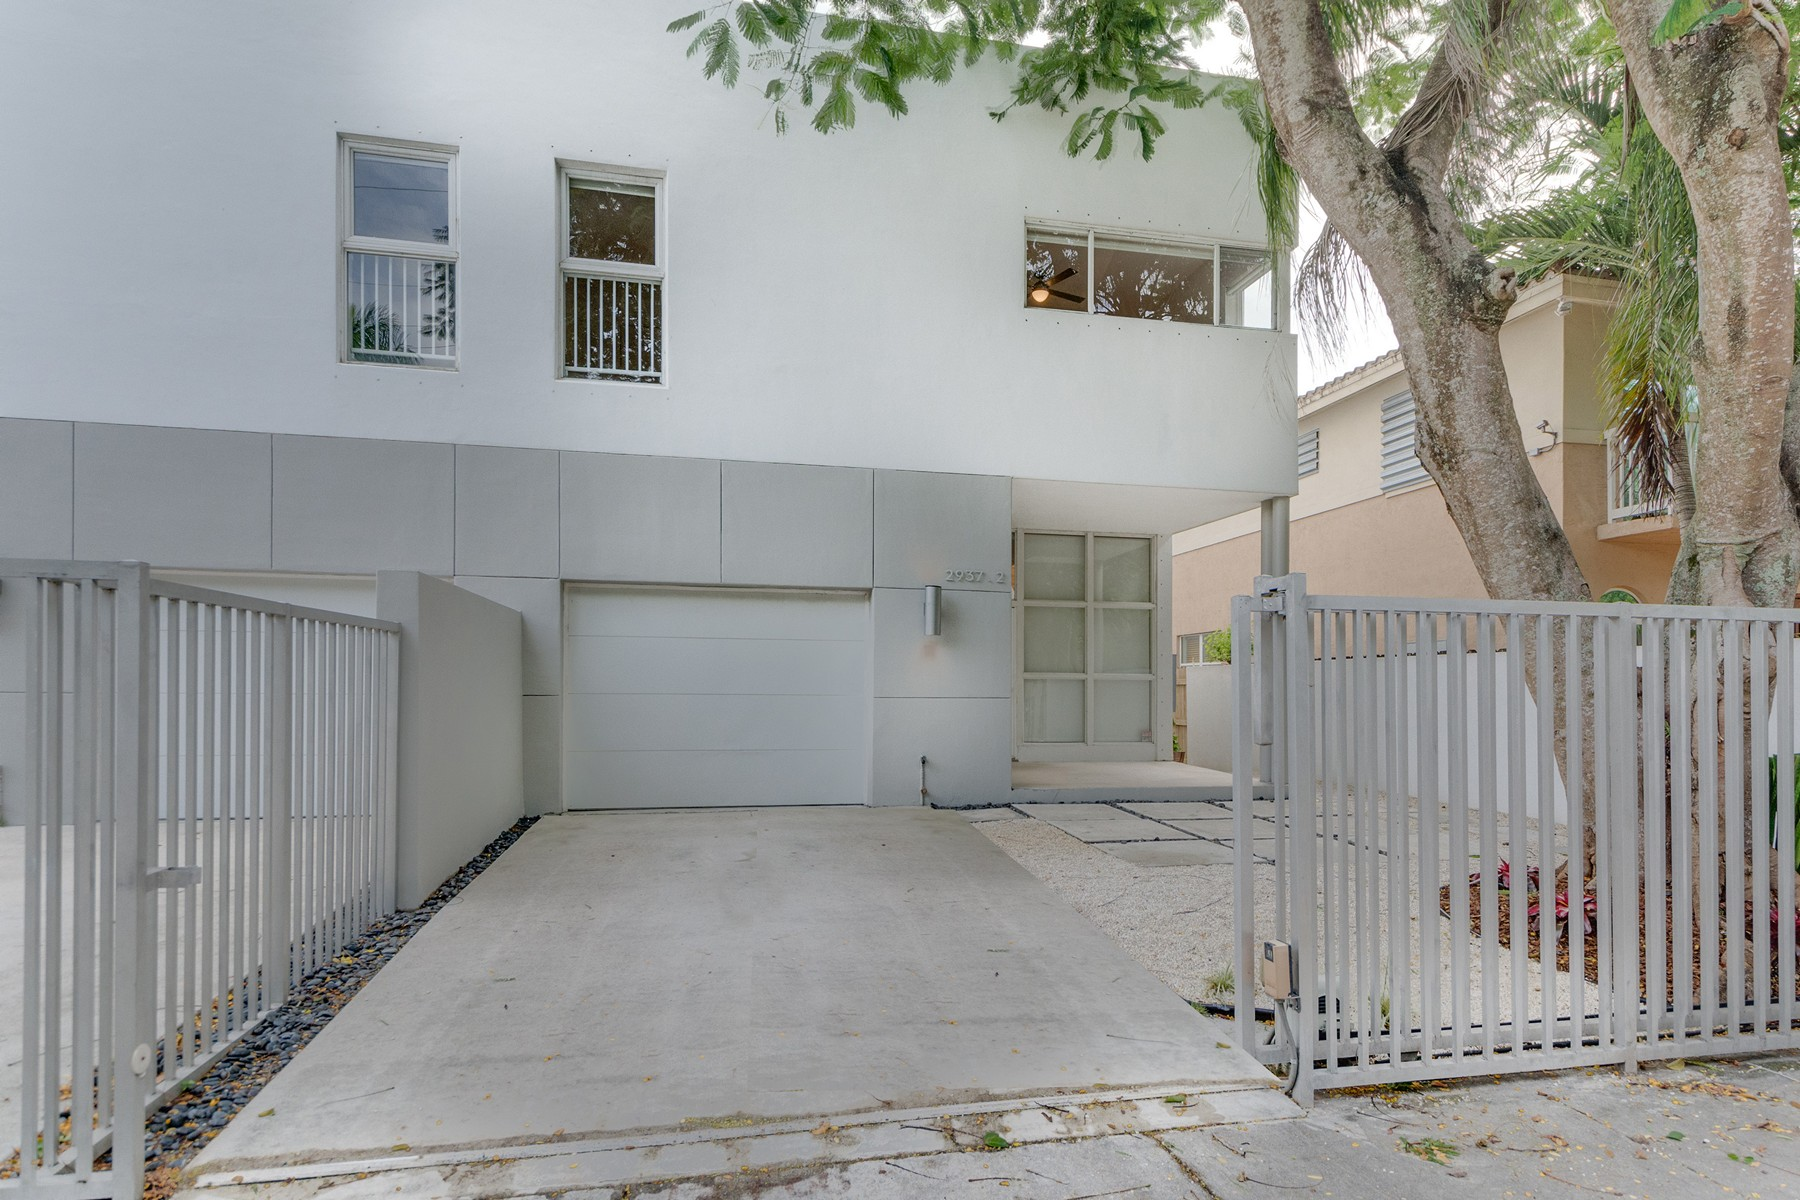 Townhouse for Sale at 2937 Sw 30 Court #1 & 2 2937 Sw 30 Court 1 & 2 Miami, Florida, 33133 United States